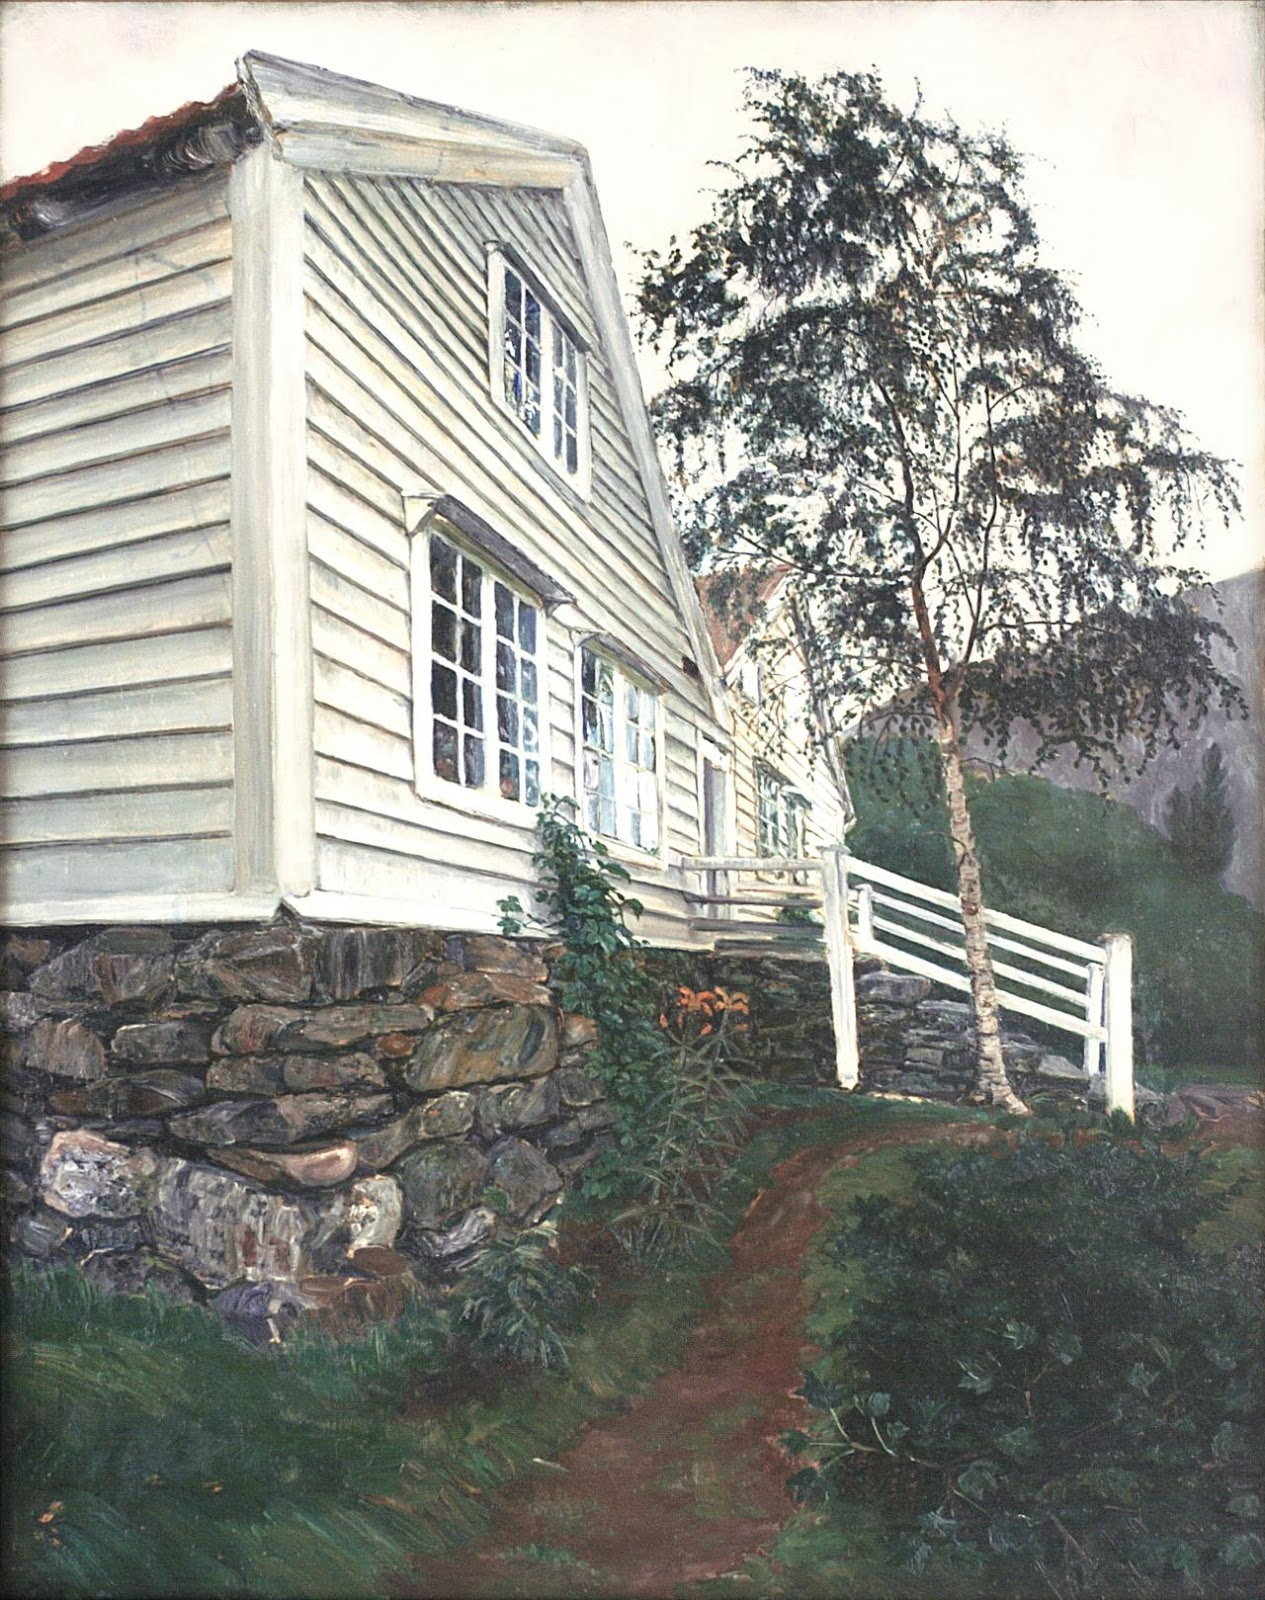 'The Vicarage.' Image: Courtesy of Nikolai-Astrup.no. Unauthorized use is prohibited.